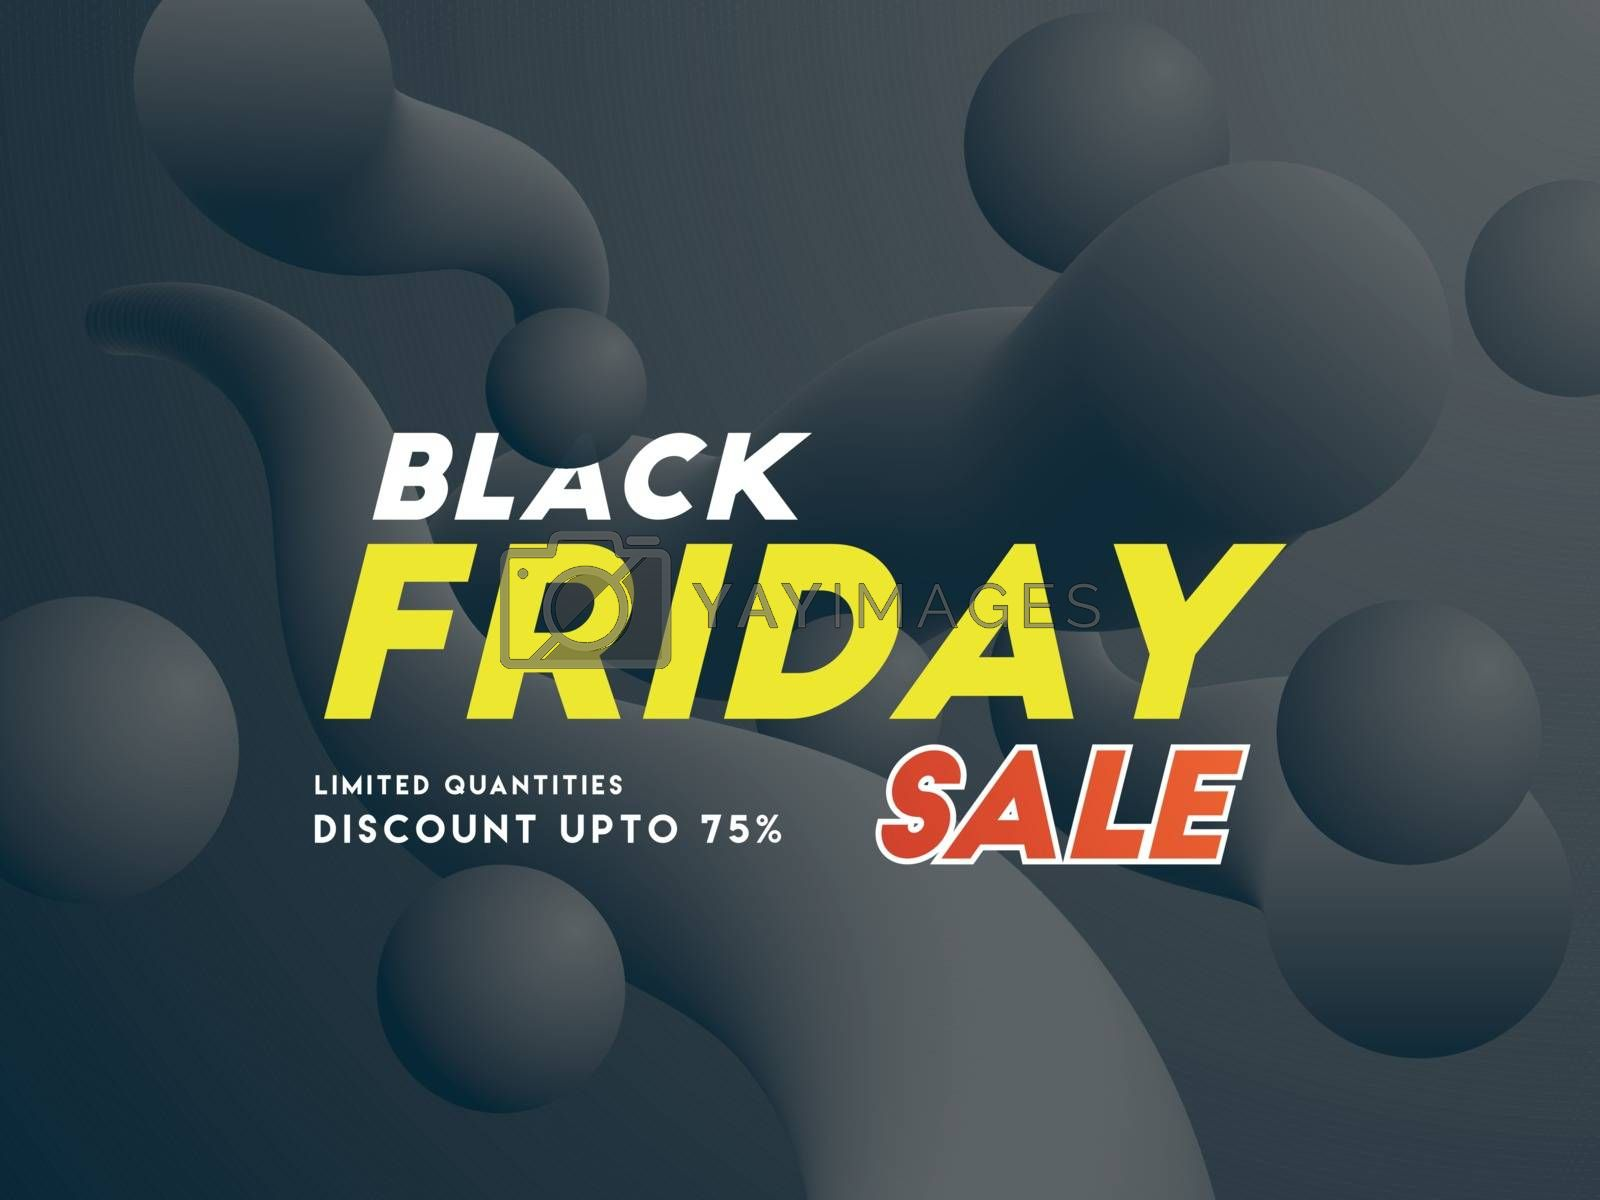 Banner or poster design, 75% discount offer with Black Friday sale text on fluid art abstract background.